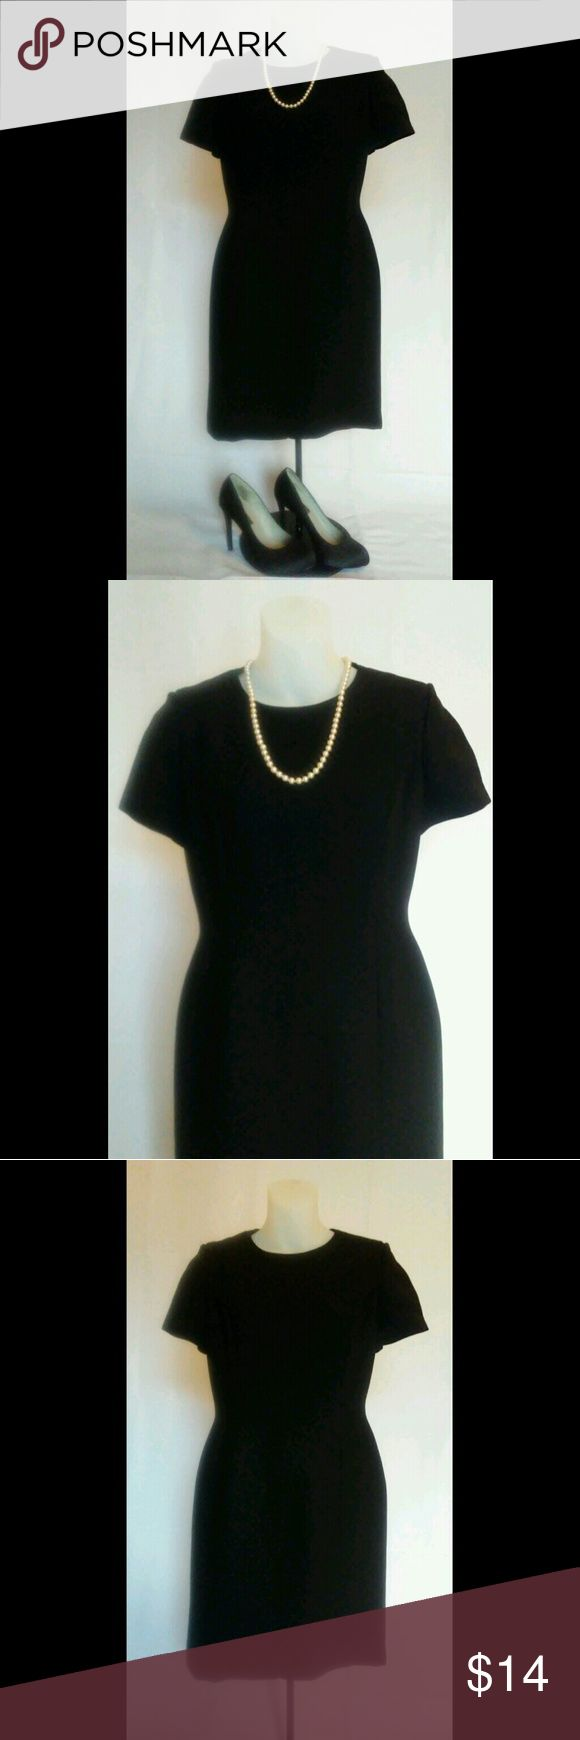 Vintage Inspired Little Black Dress Jackie O would have been proud to wear this little number. This dress is the definition of how conservative can still be sexy! Even though it provides full coverage it hugs your curves and shows off those legs! Petite Sophisticate Dresses Mini